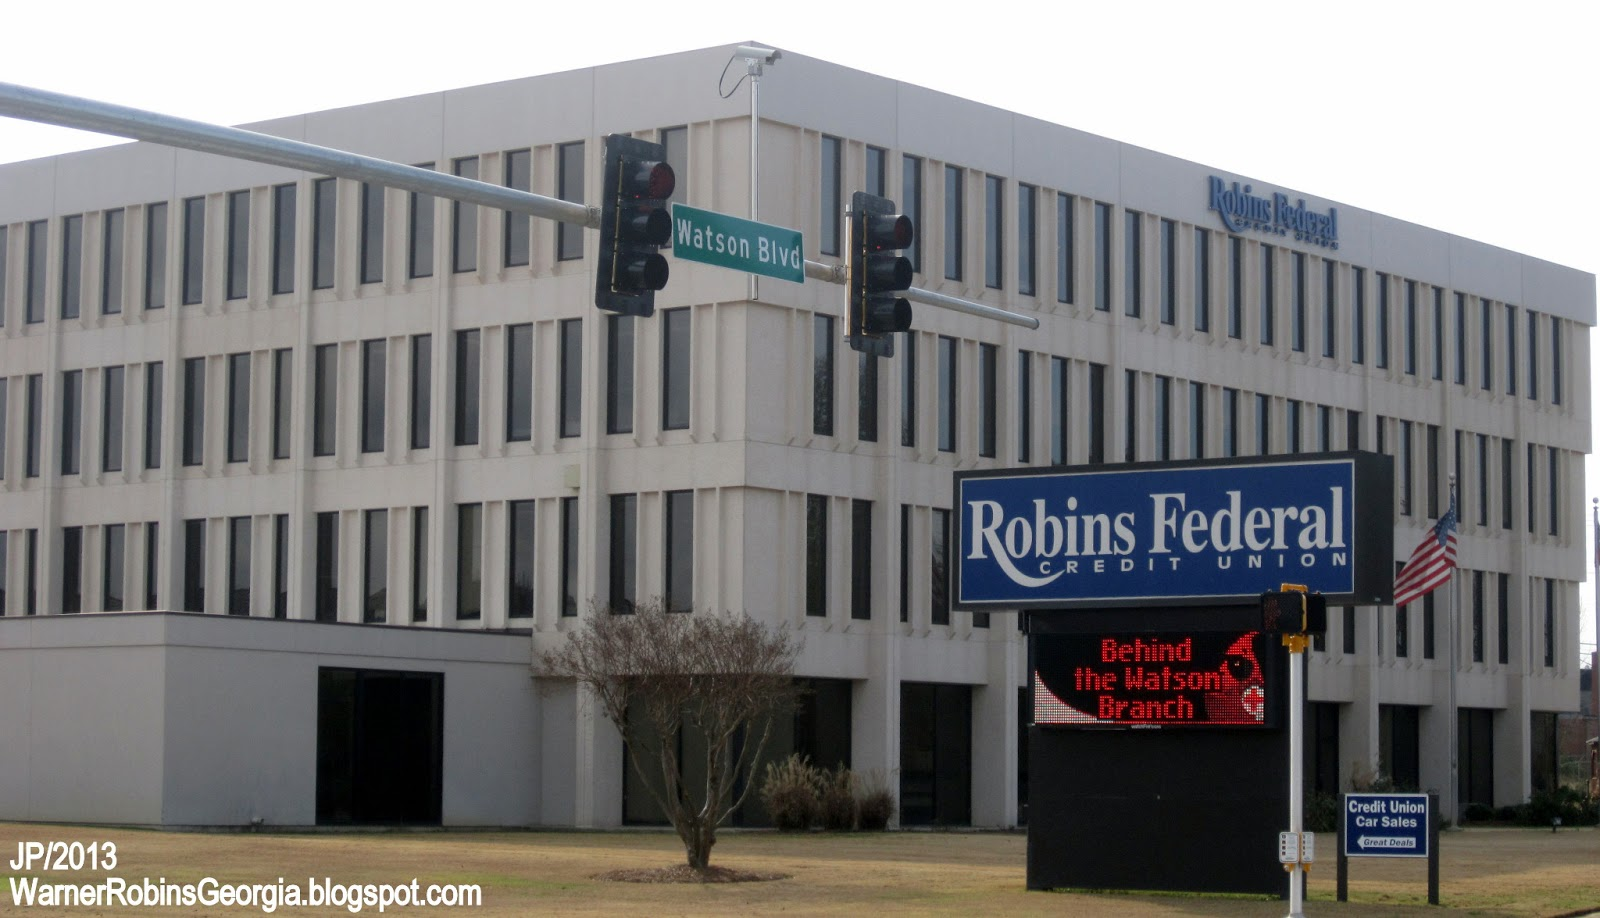 ... ROBINS FEDERAL WARNER ROBINS GEORGIA Watson Blvd. Robins Federal